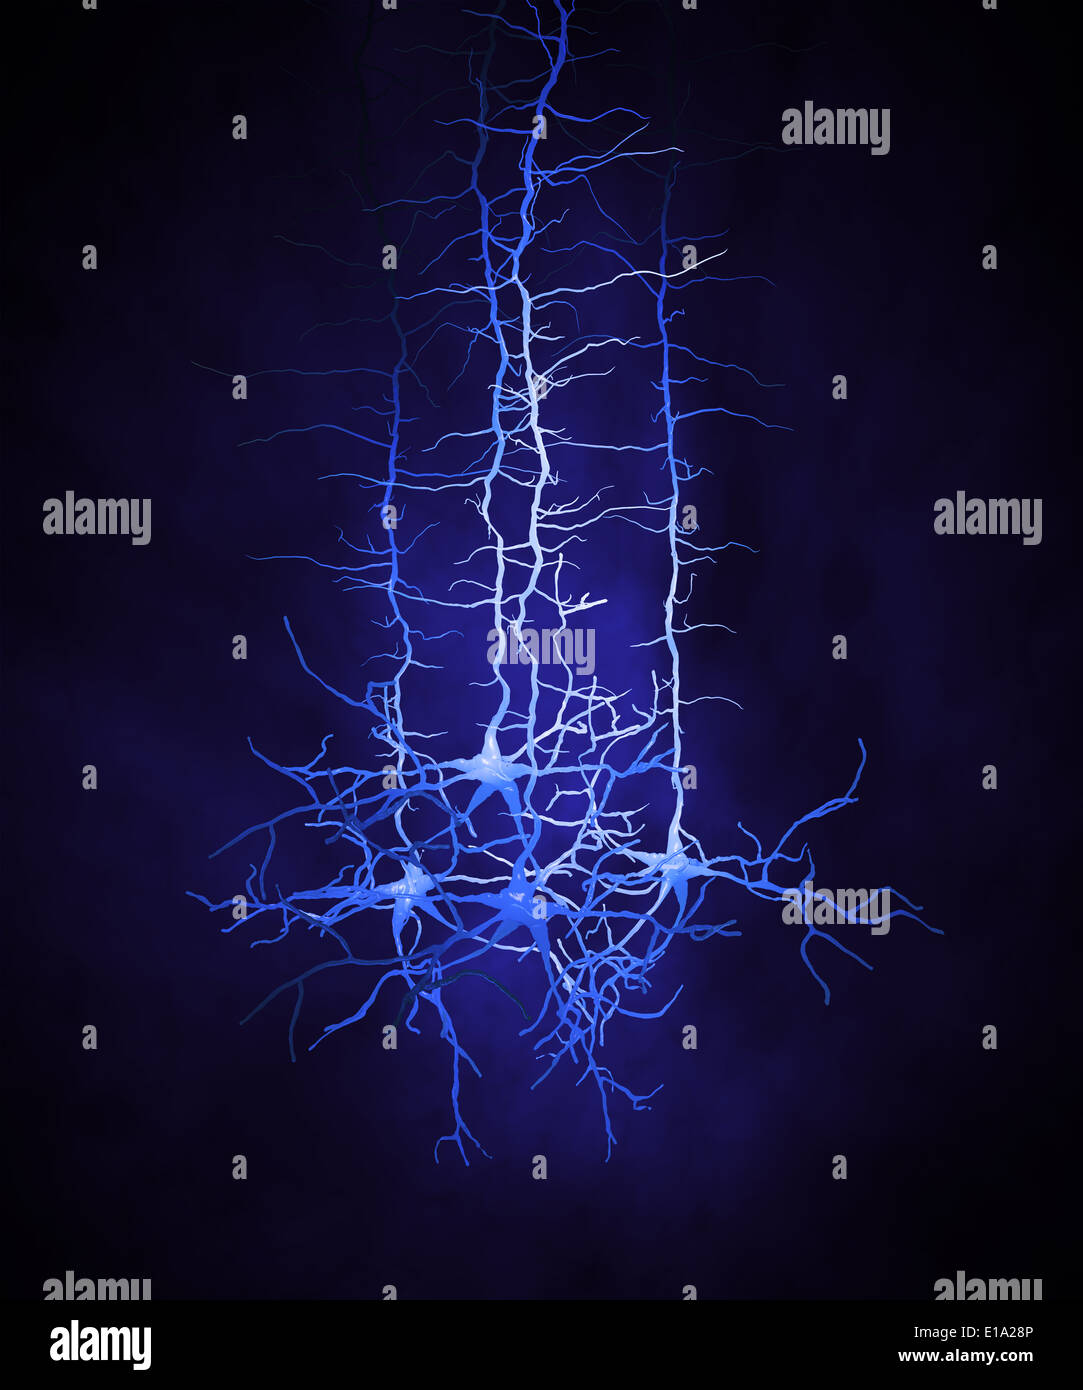 A group of neuron cells - Stock Image